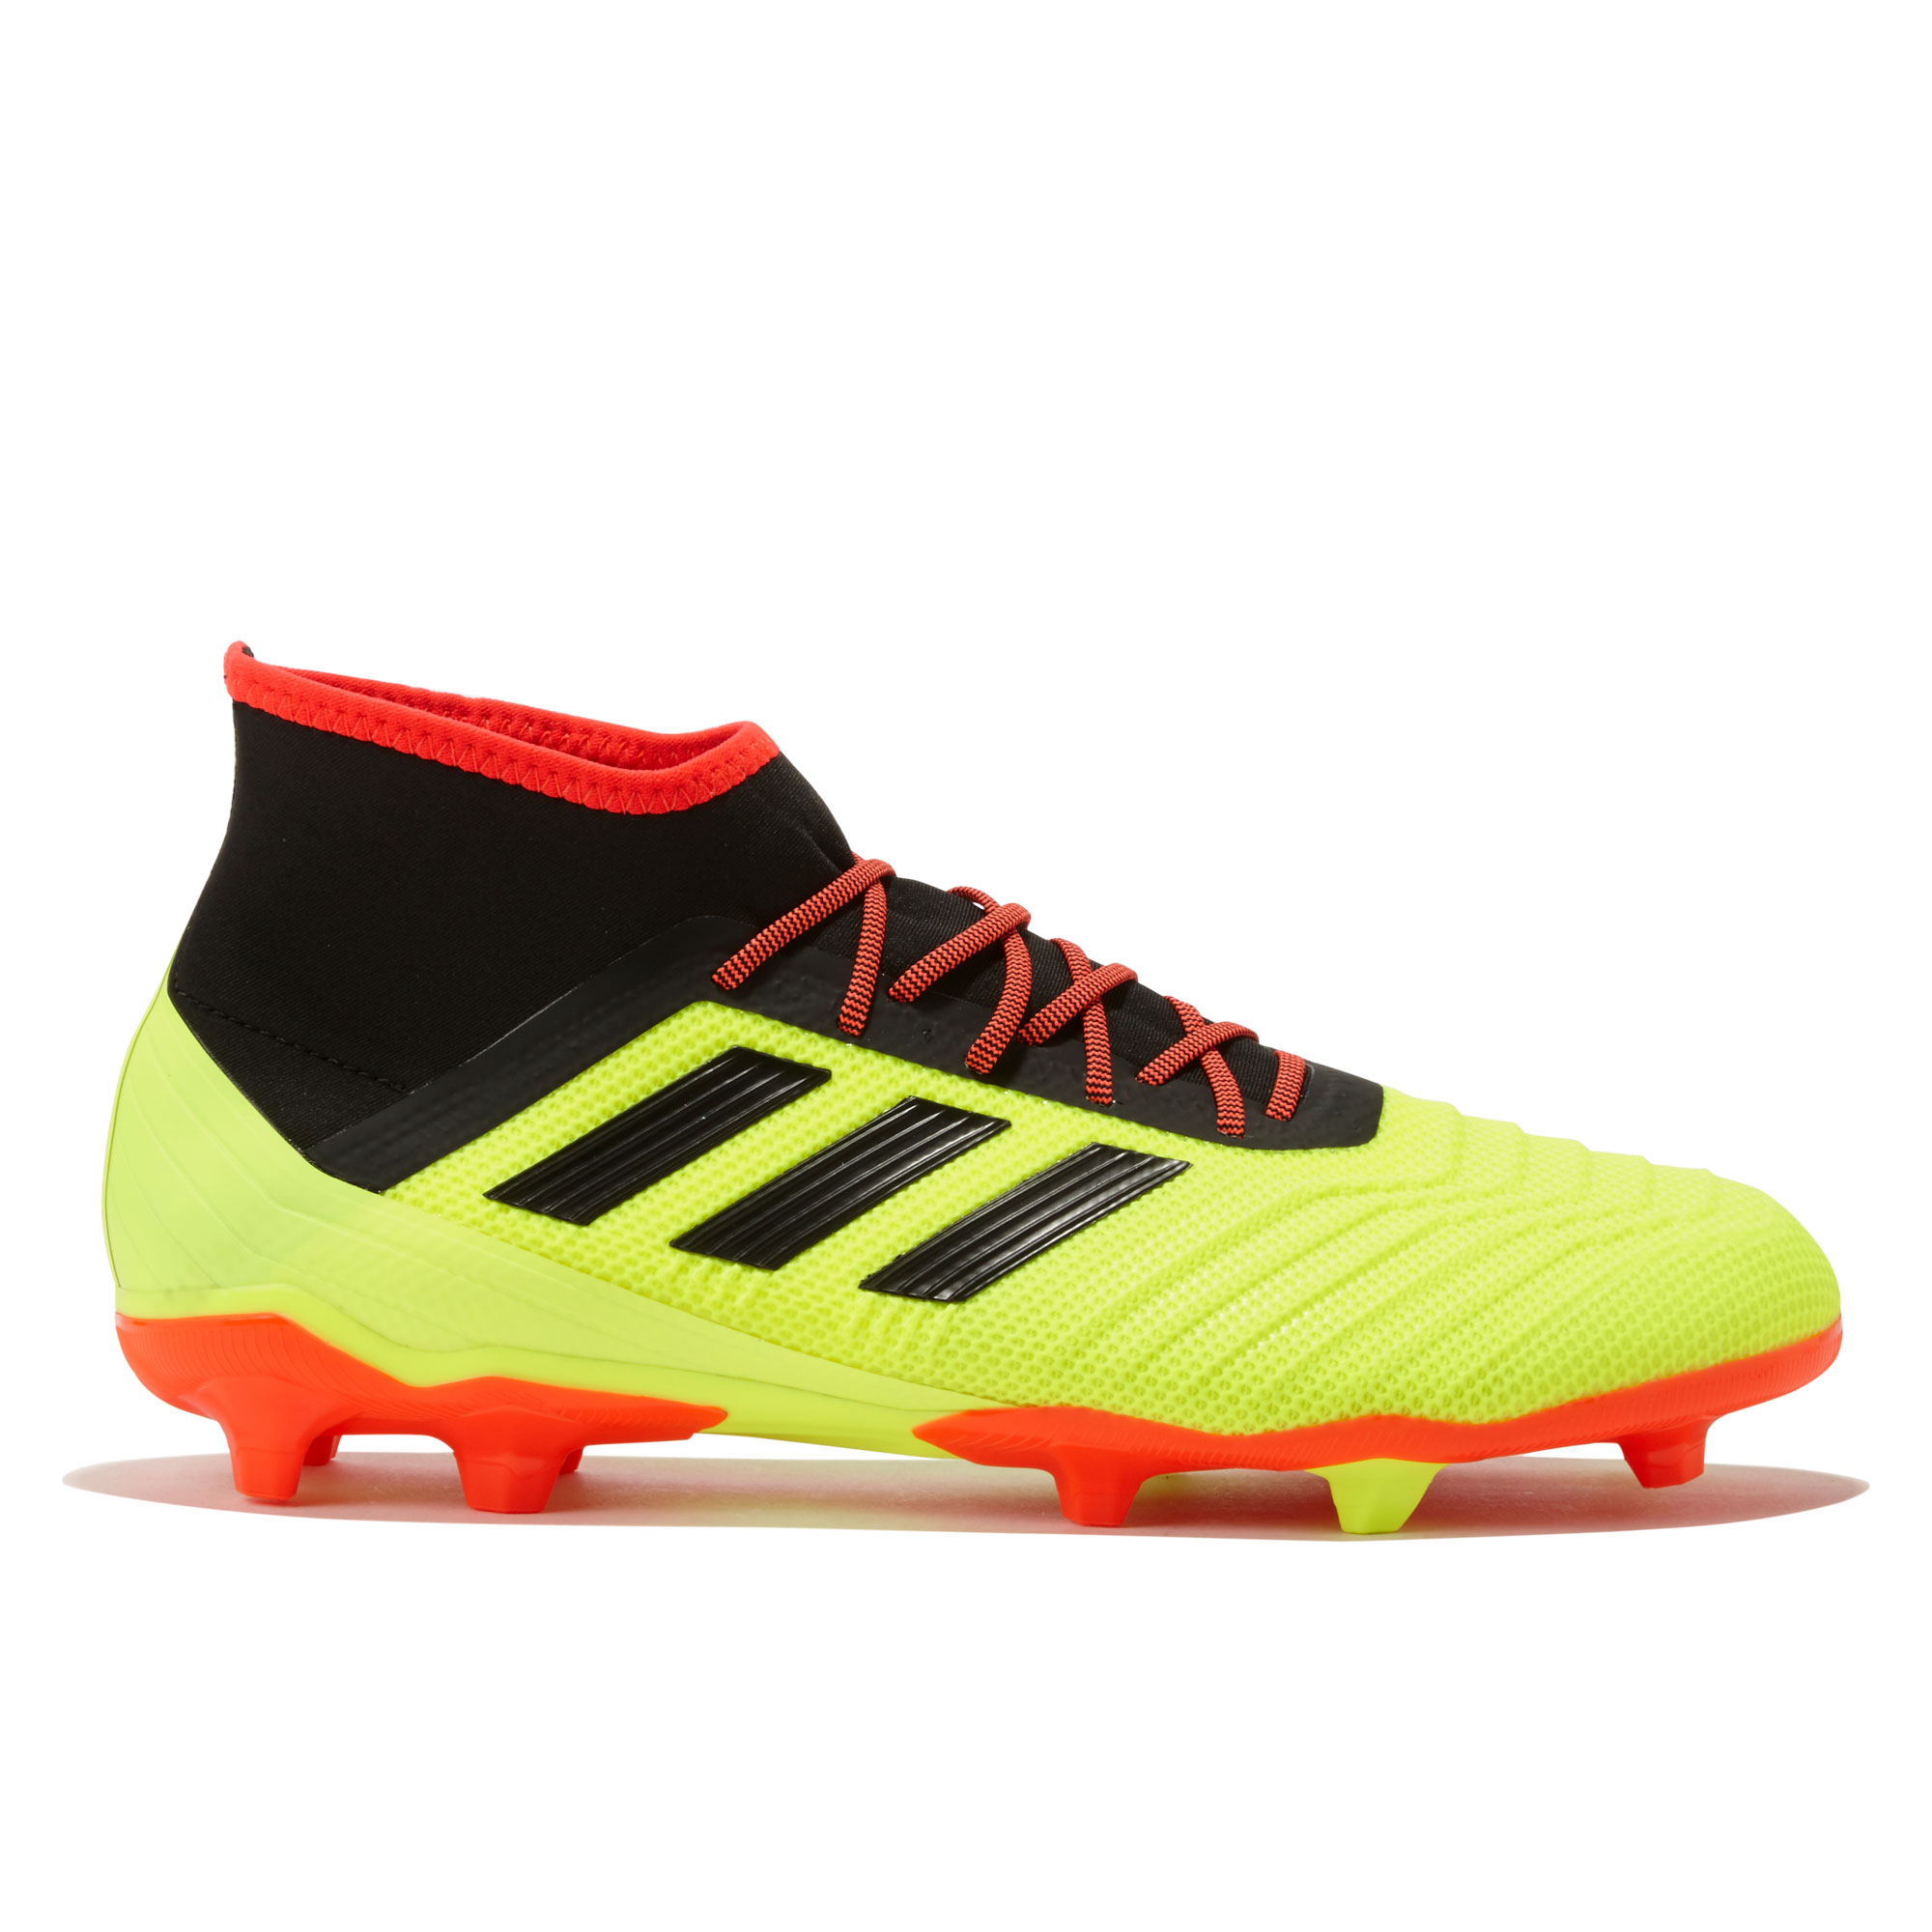 Image of adidas Predator 18.2 Firm Ground Football Boots - Yellow